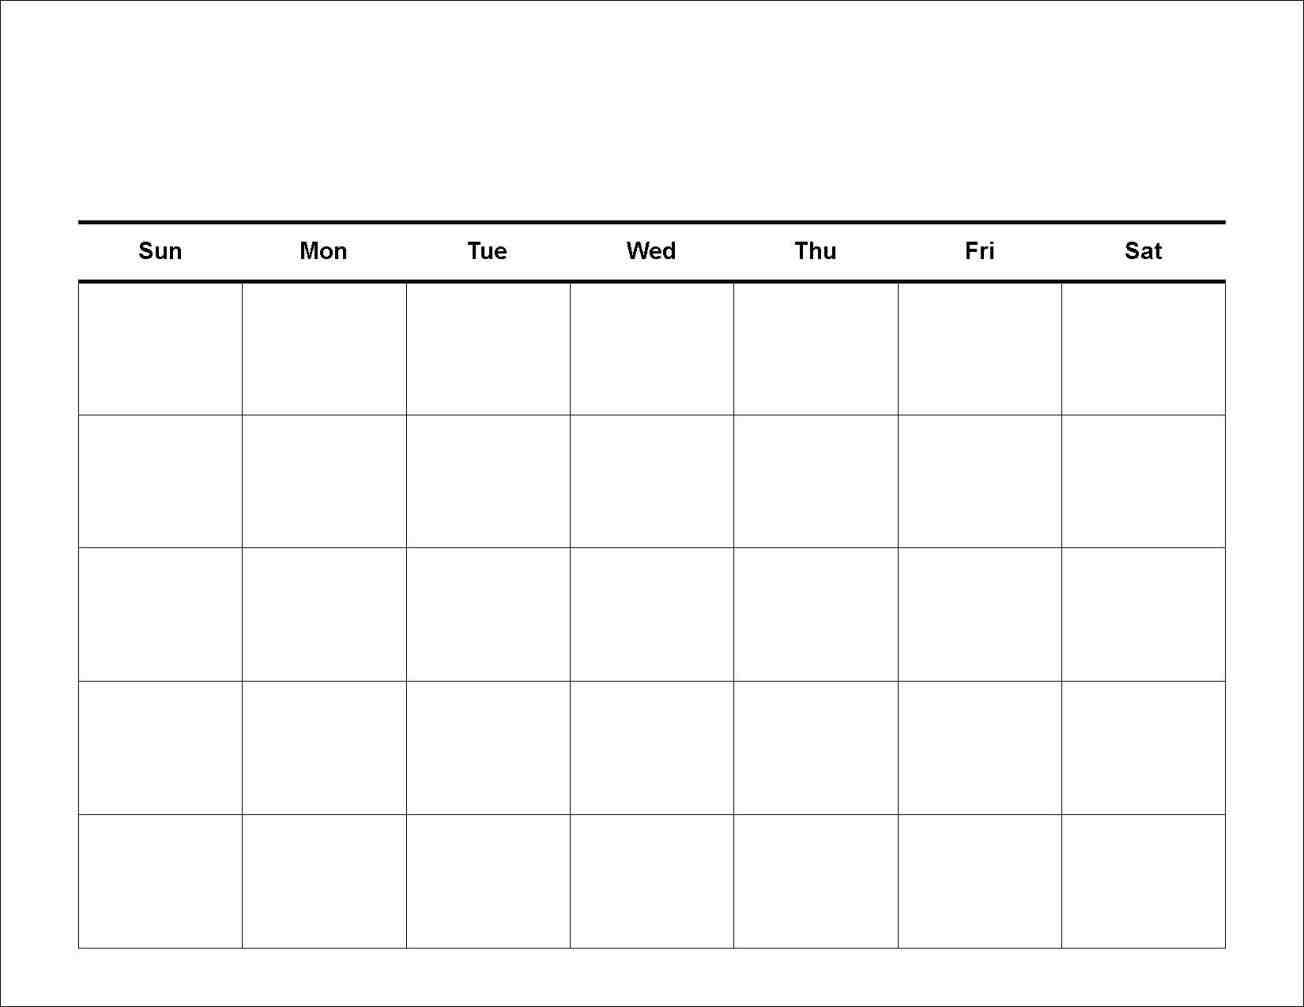 Day Weekly Planner Template Schedule Calendar Clever Ideas within 7 Day Weekly Calendar Printable